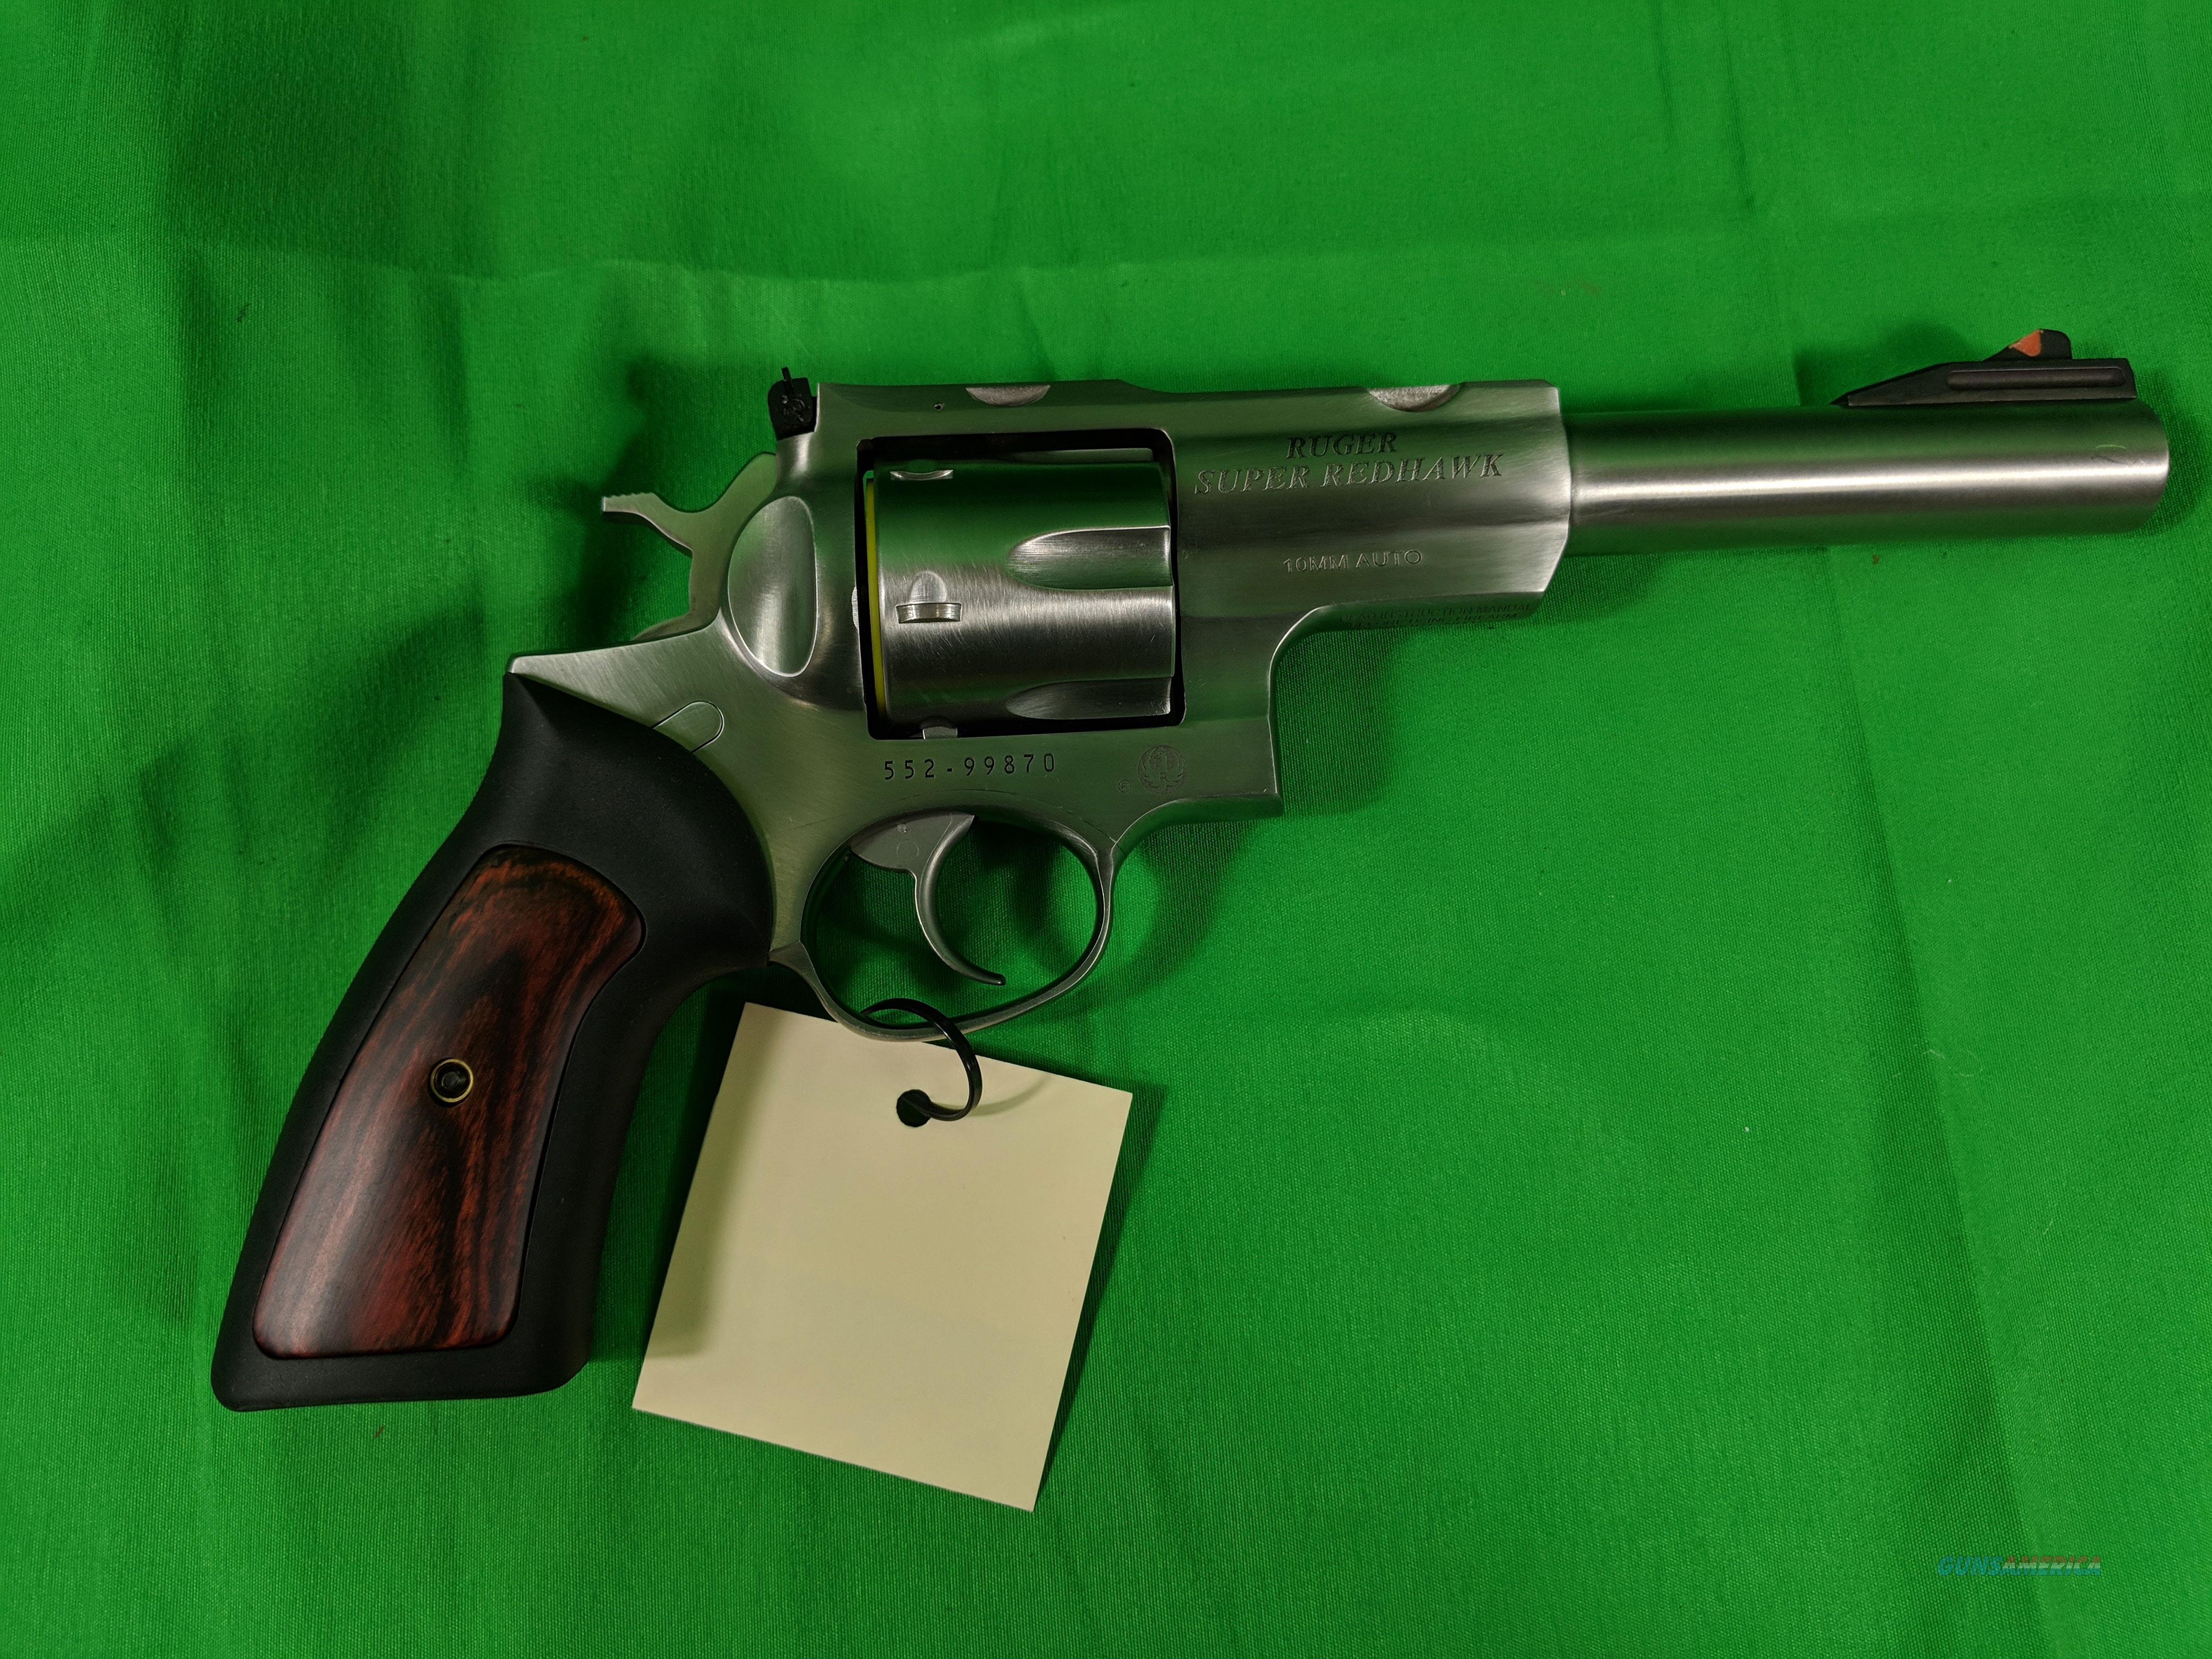 Ruger Super Redhawk double action revolver in 10mm  Guns > Pistols > Ruger Double Action Revolver > Redhawk Type